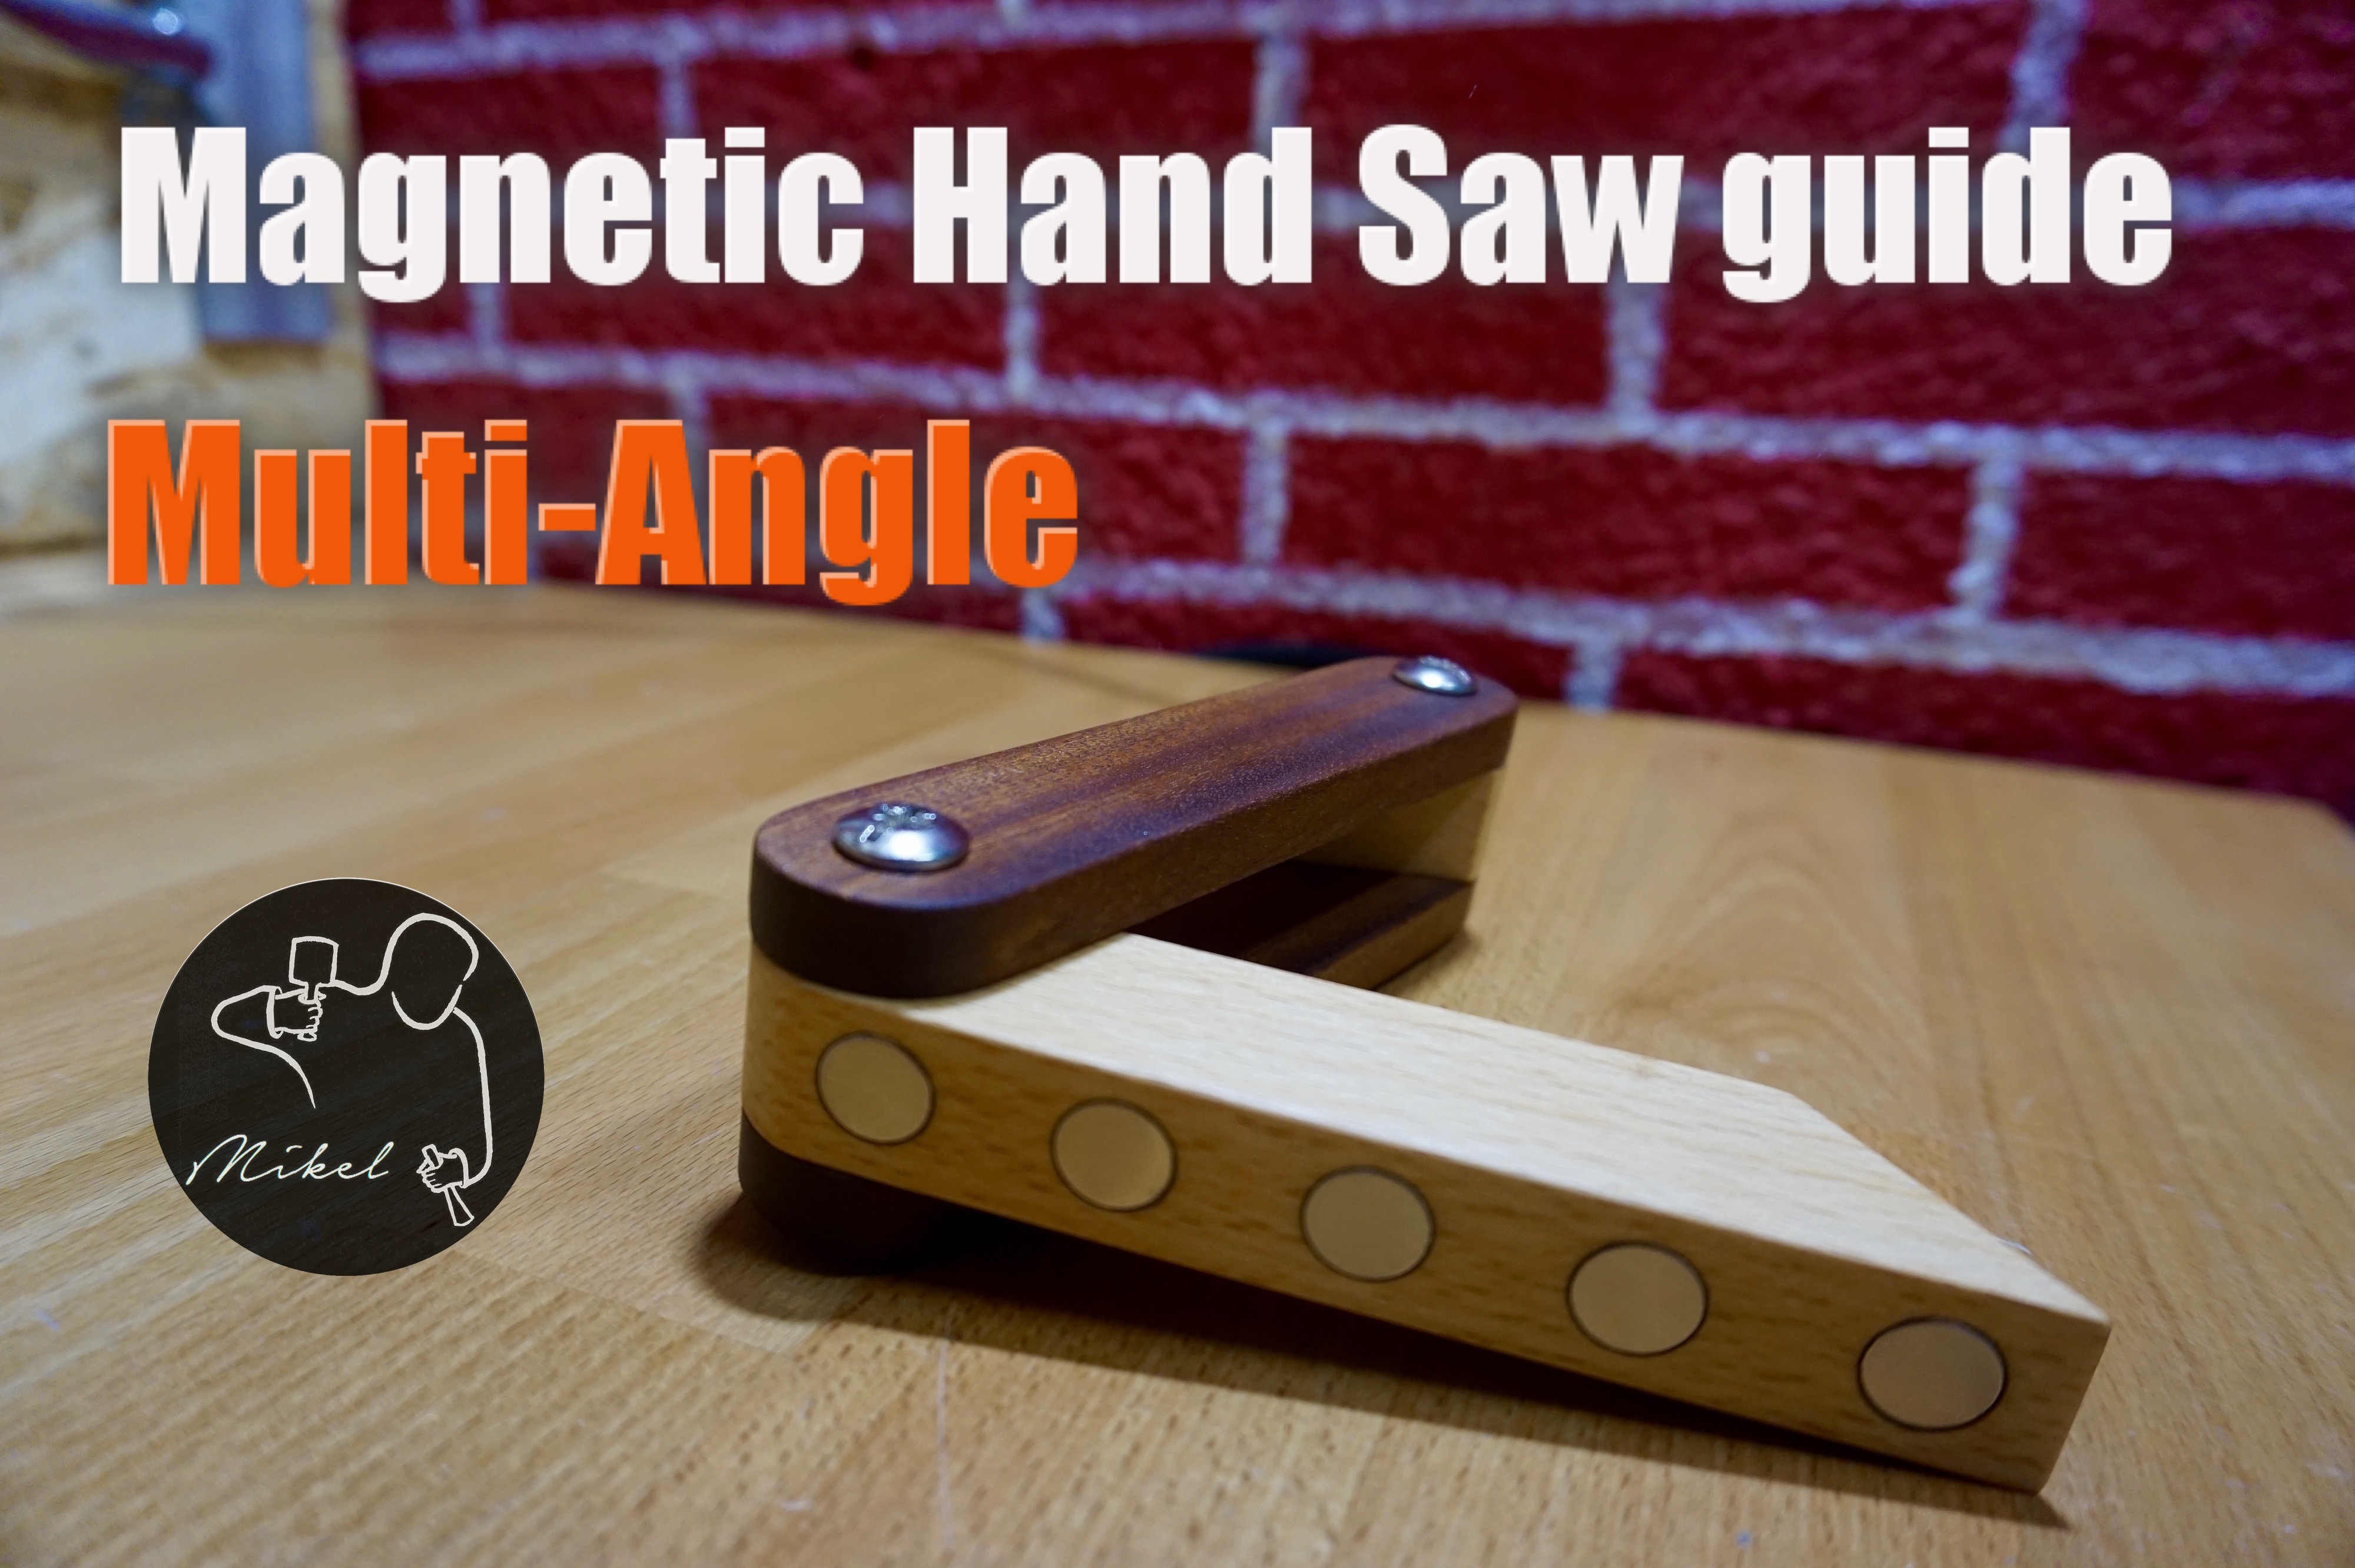 Picture of Multi-Angle Magnetic Hand Saw Guide